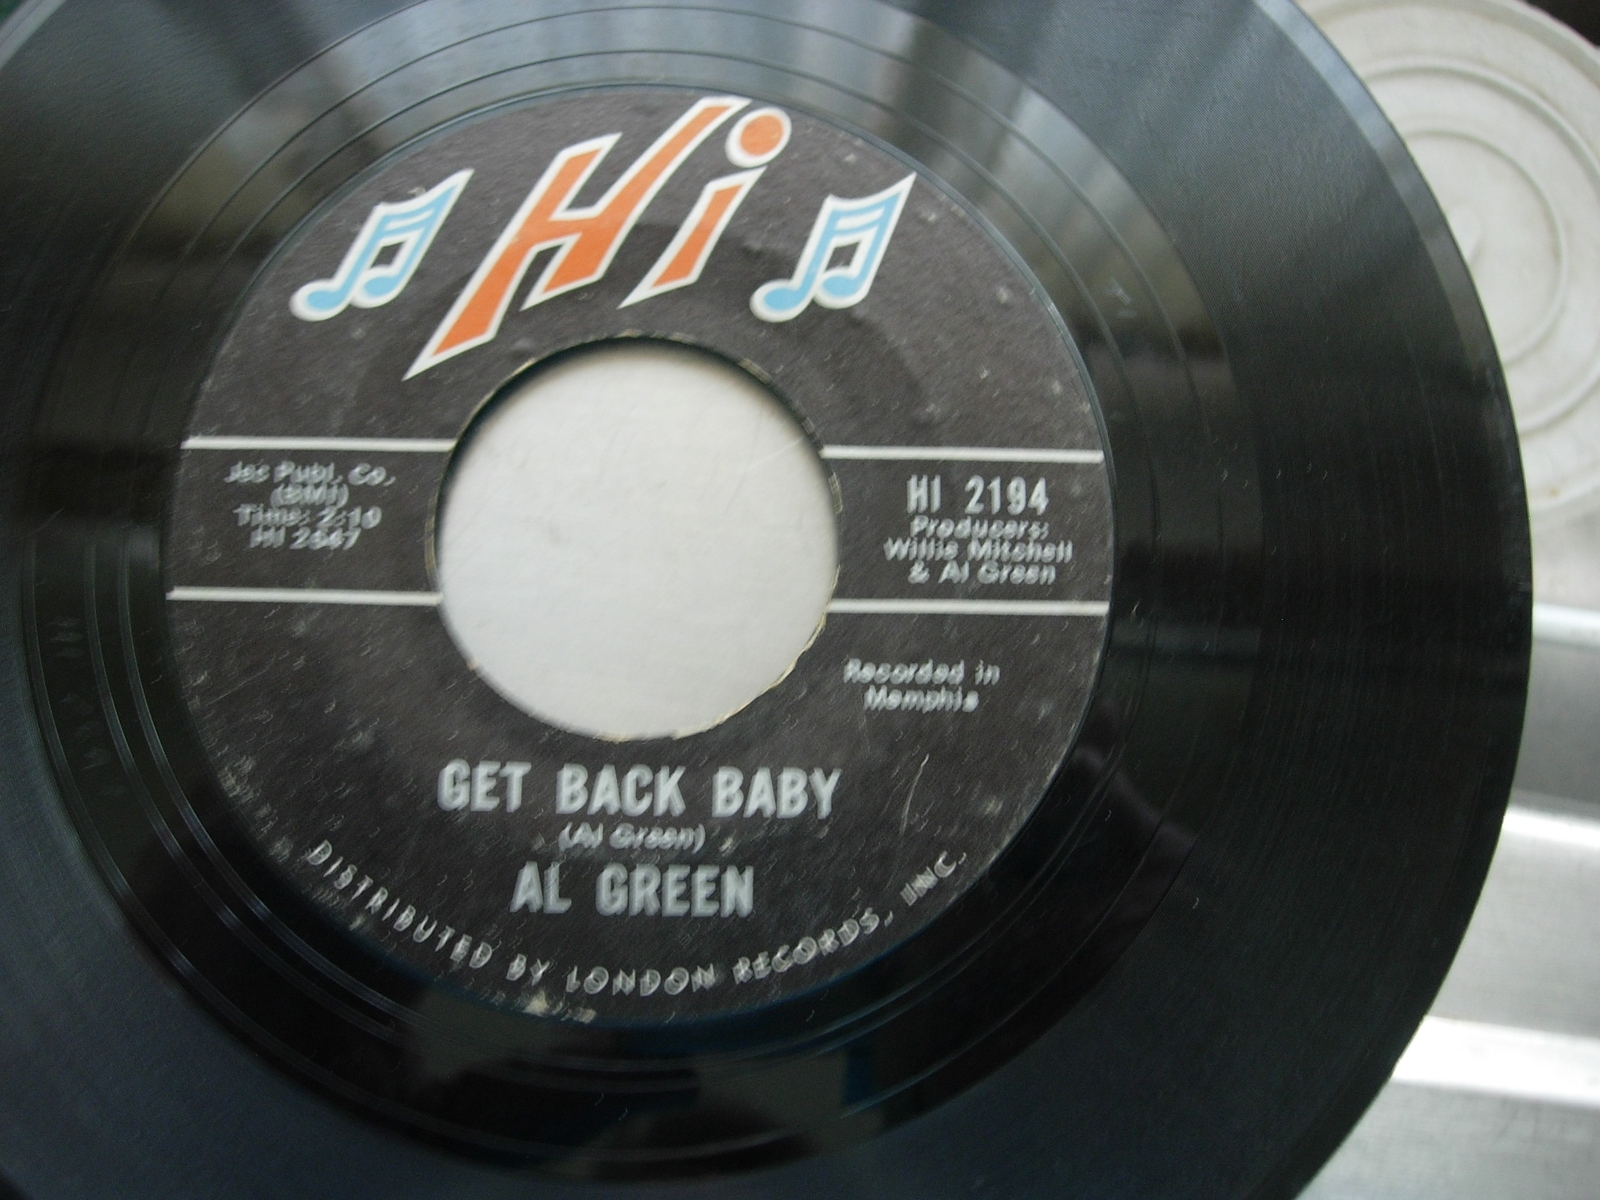 Al Green - Tired of Being Alone / Get Back Baby - HI Records 2194